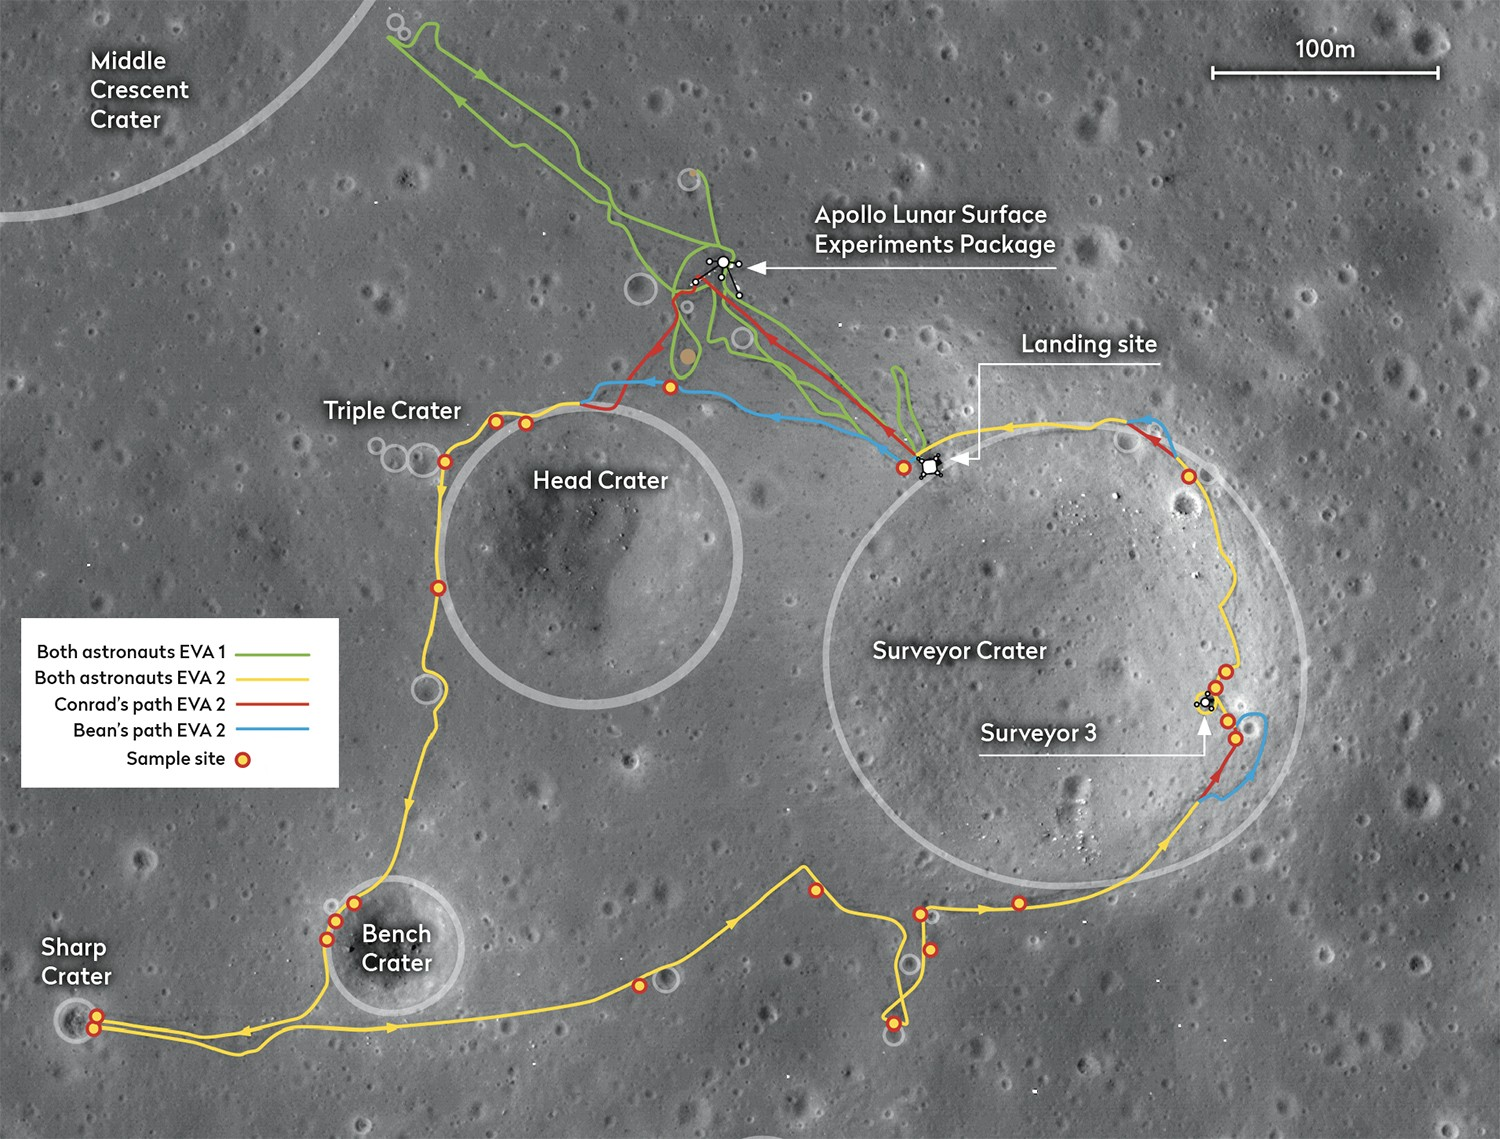 The paths of Conrad and Bean's two moonwalks, which totalled almost eight hours and yielded 34kg of samples. Credit: NASA